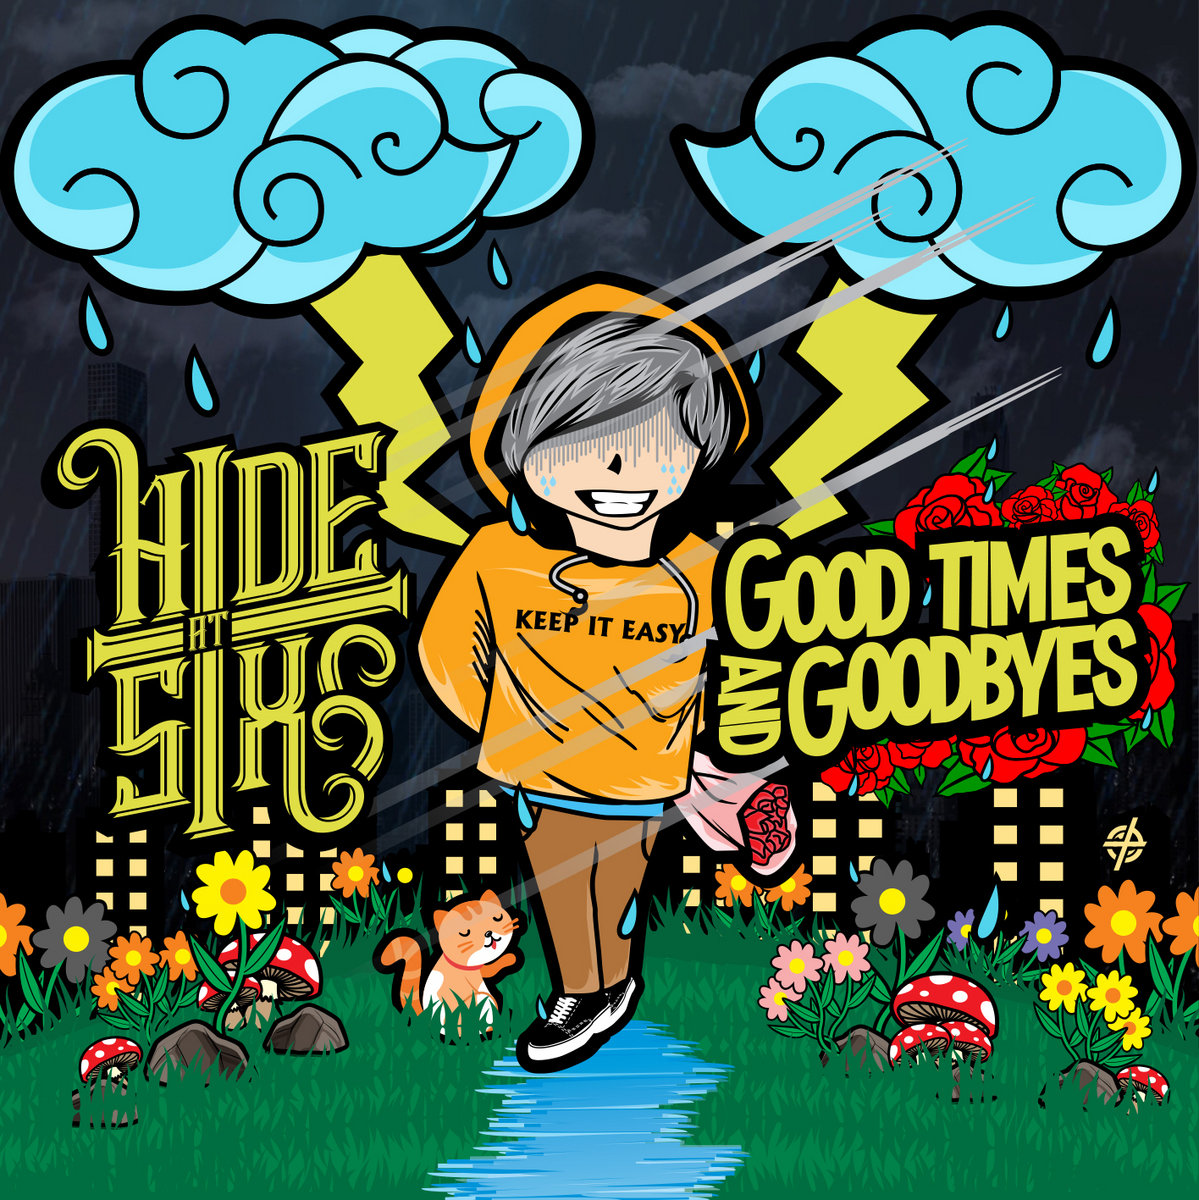 Hide at Six - Good Times and Goodbyes (2019)